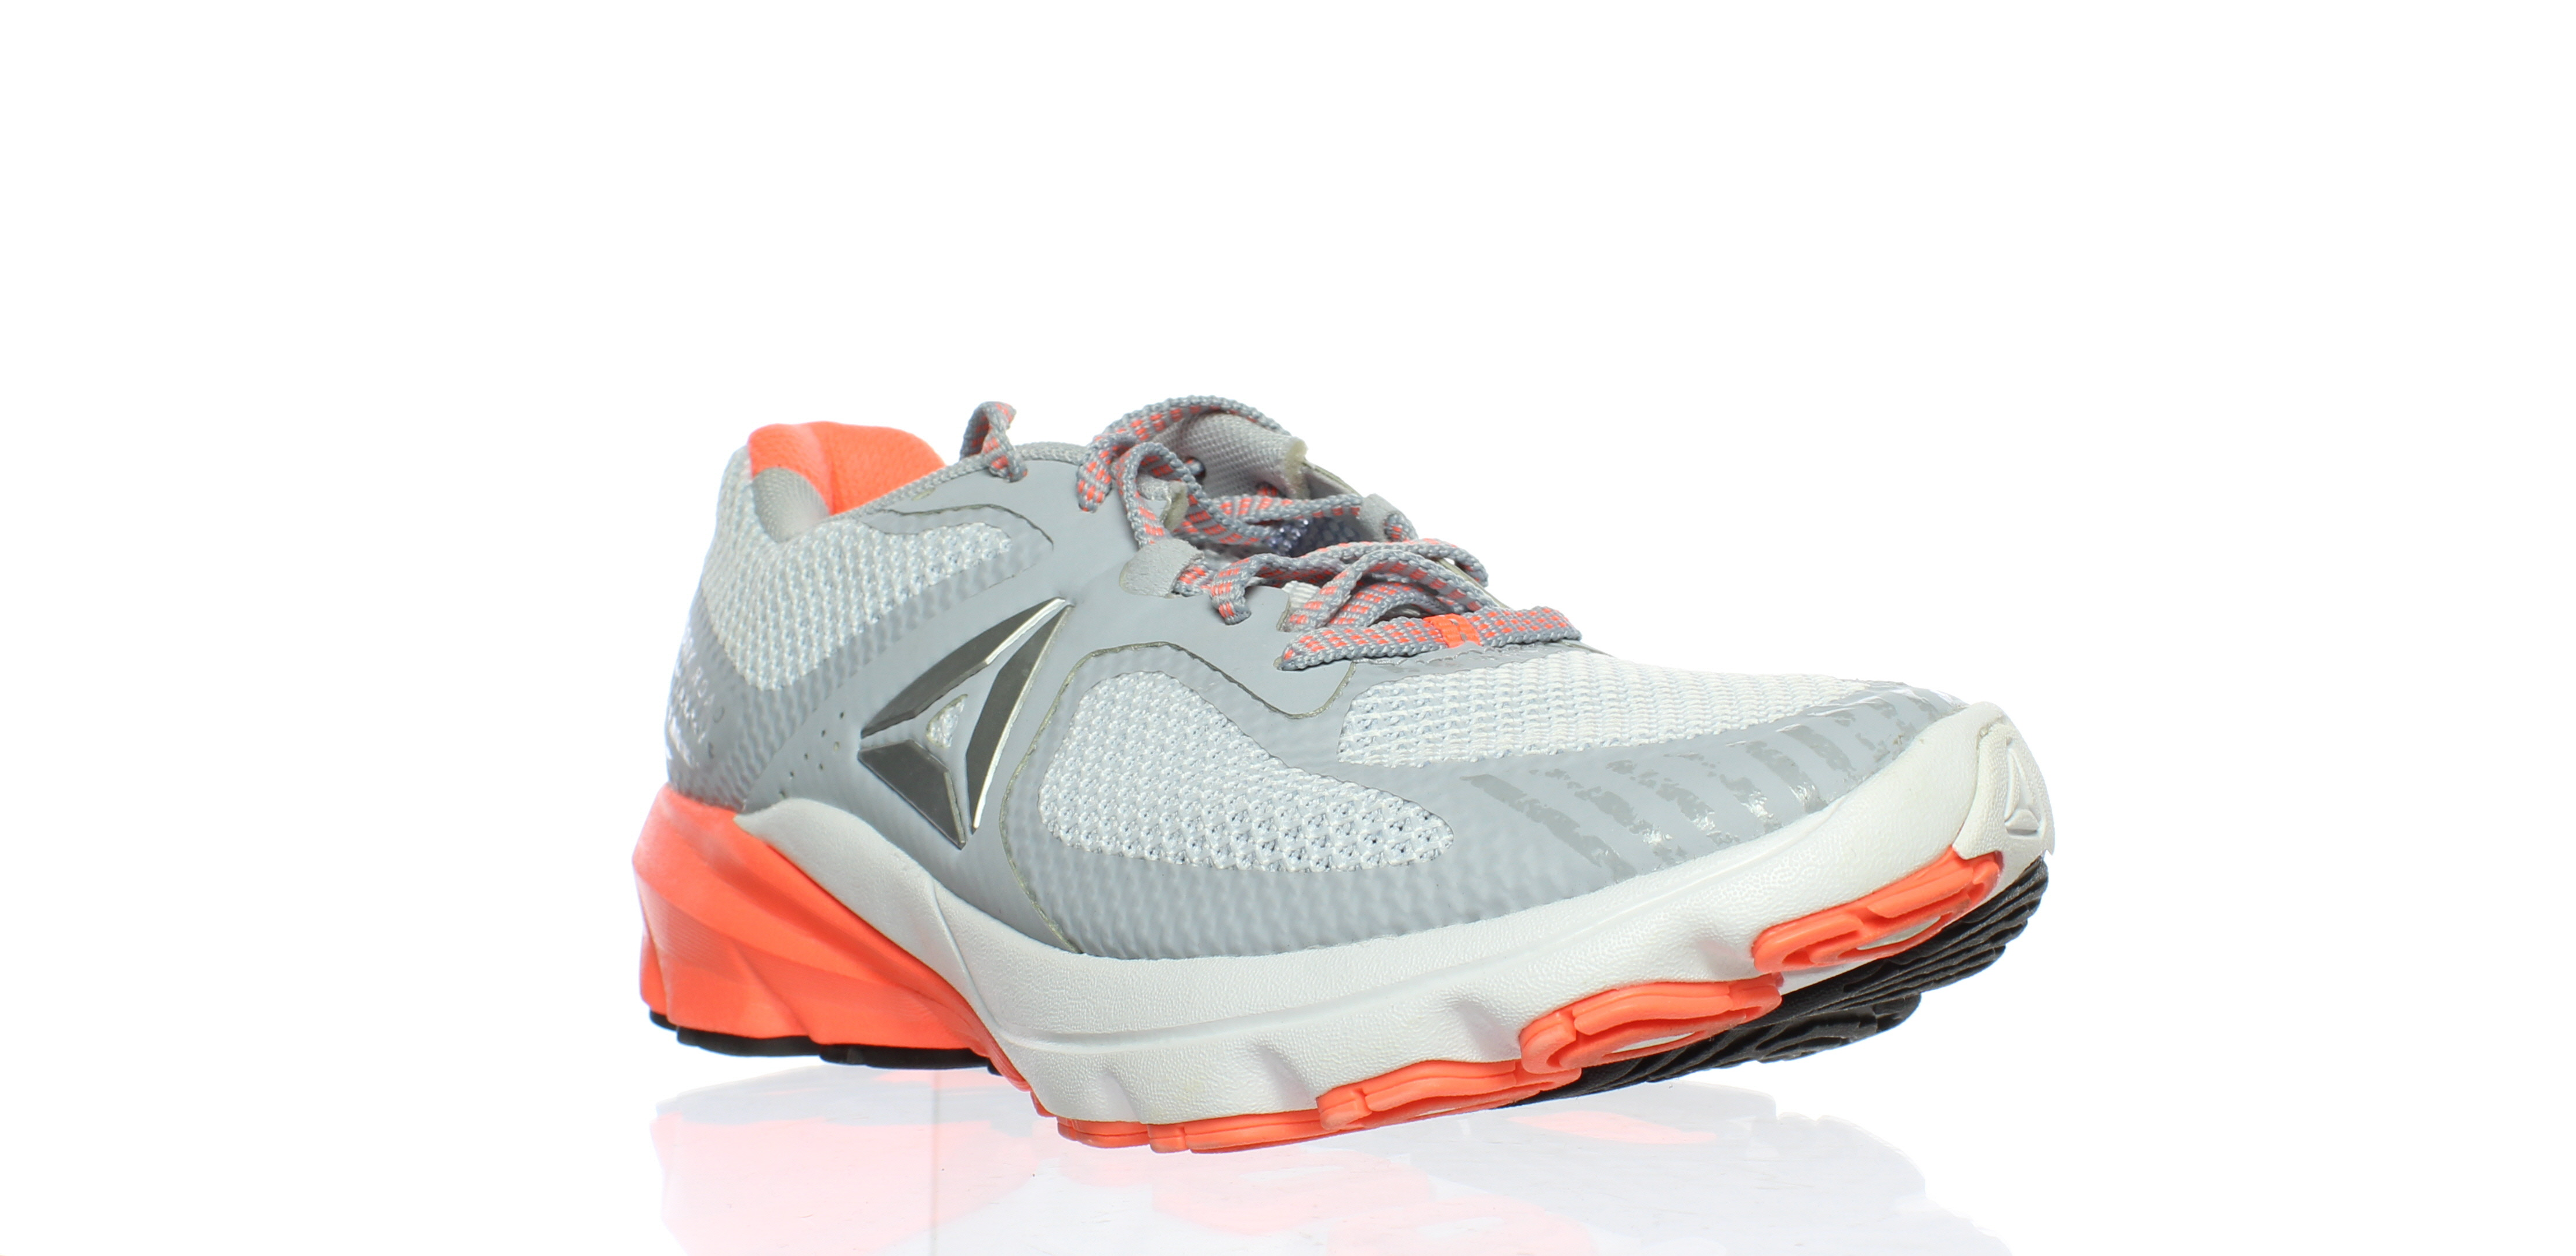 08c40ac9a3d Reebok Womens Gray Cross Training Shoes Size 6 (94971)